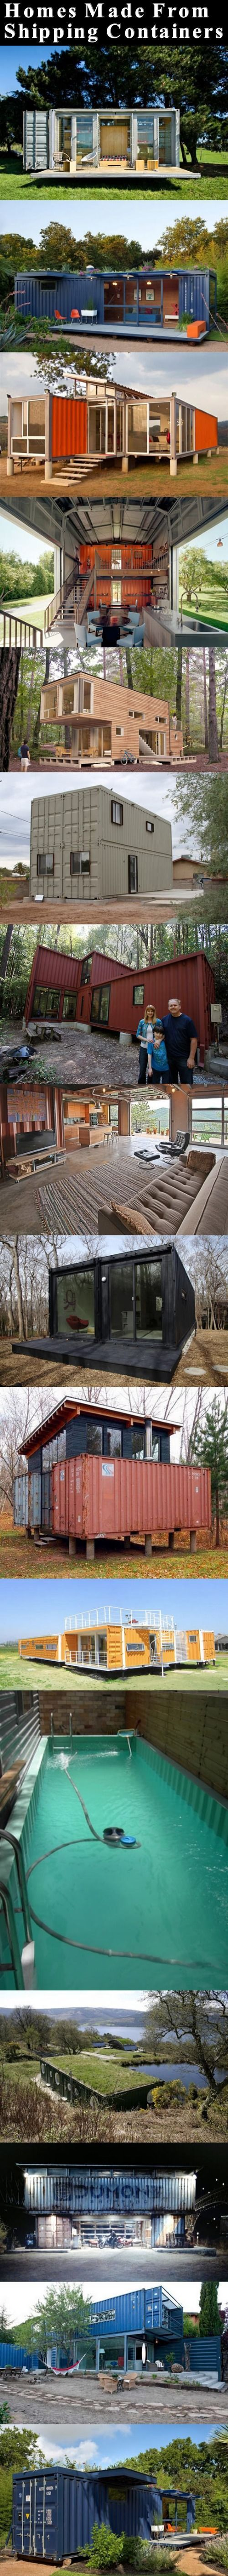 Homes Made From Shipping Containers Pictures, Photos, and Images for Facebook, Tumblr, Pinterest, and Twitter